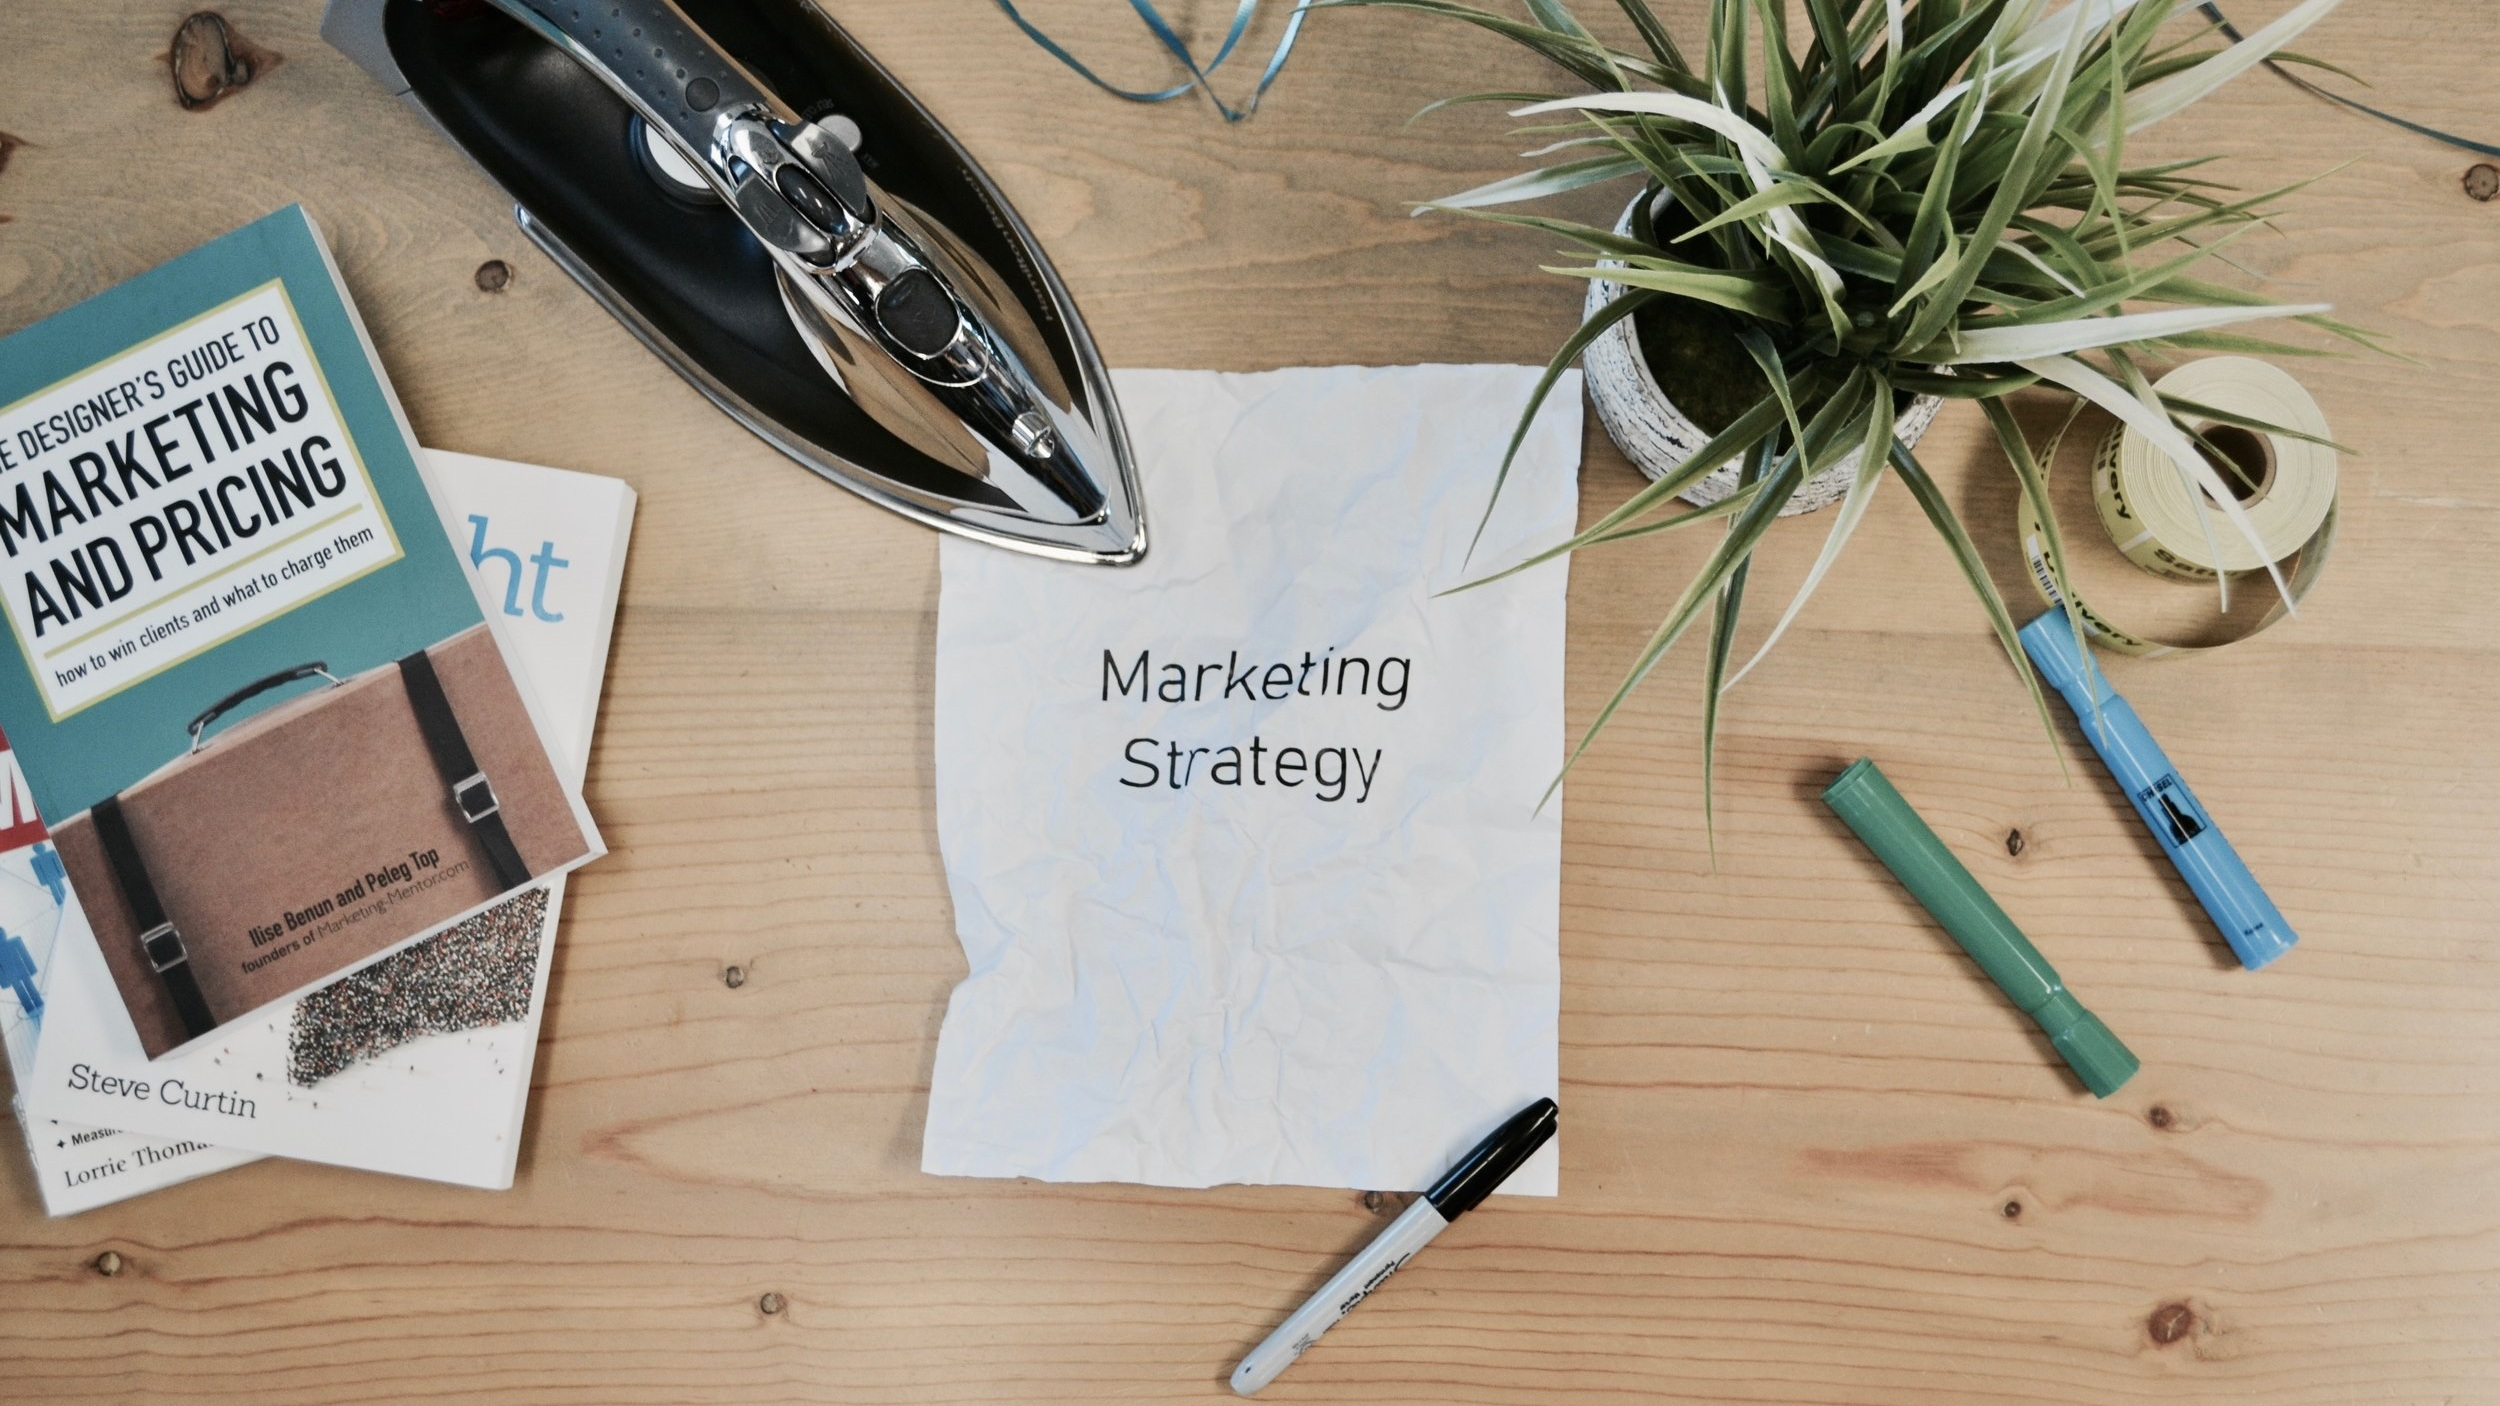 Building a business is hard, get some help - Finding a Marketing Partner